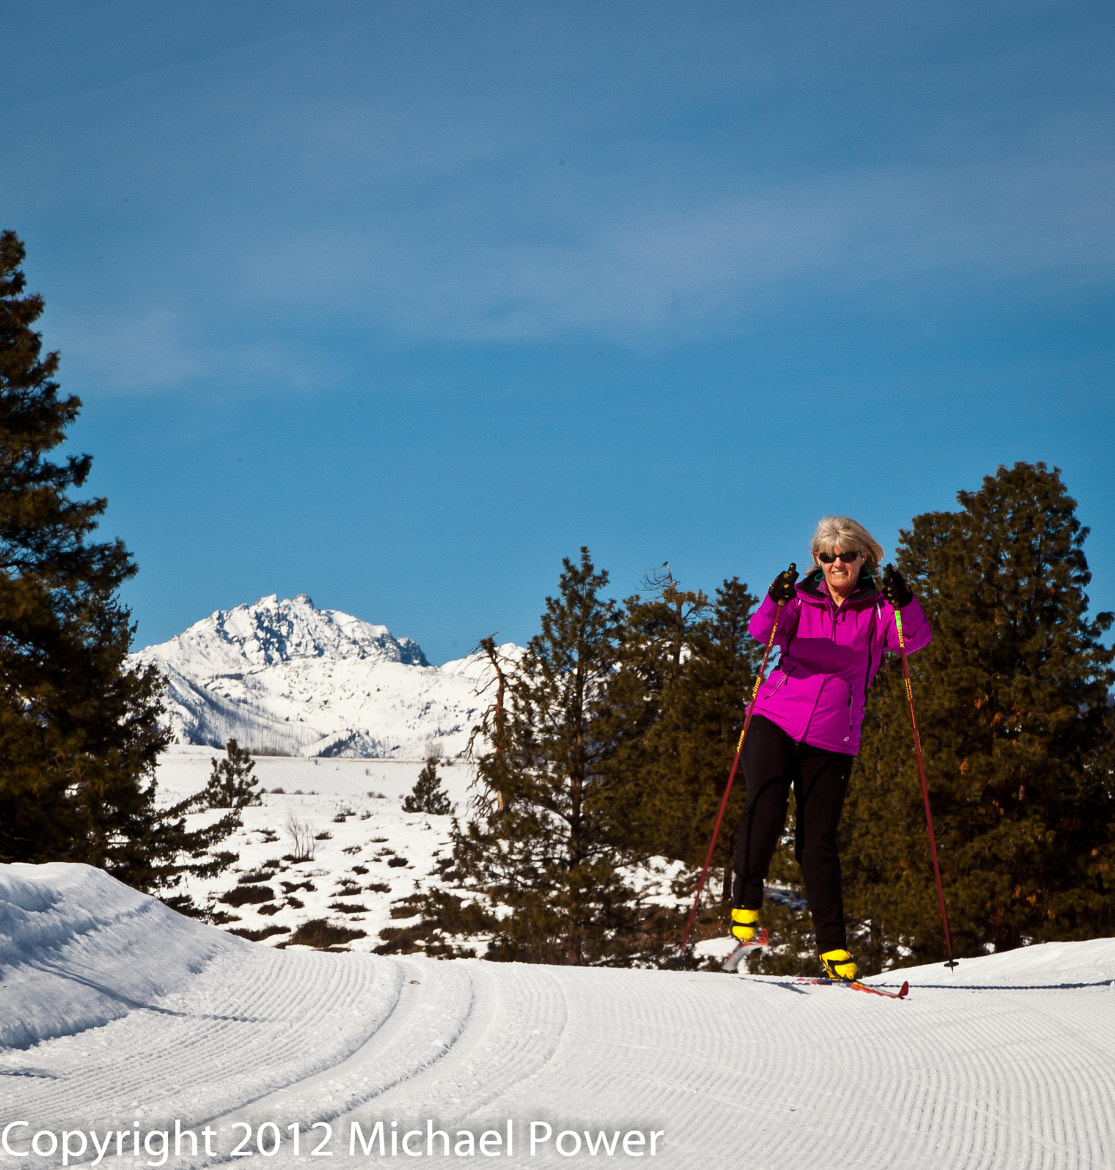 Photograph Methow Valley Skiing by Michael Power on 500px